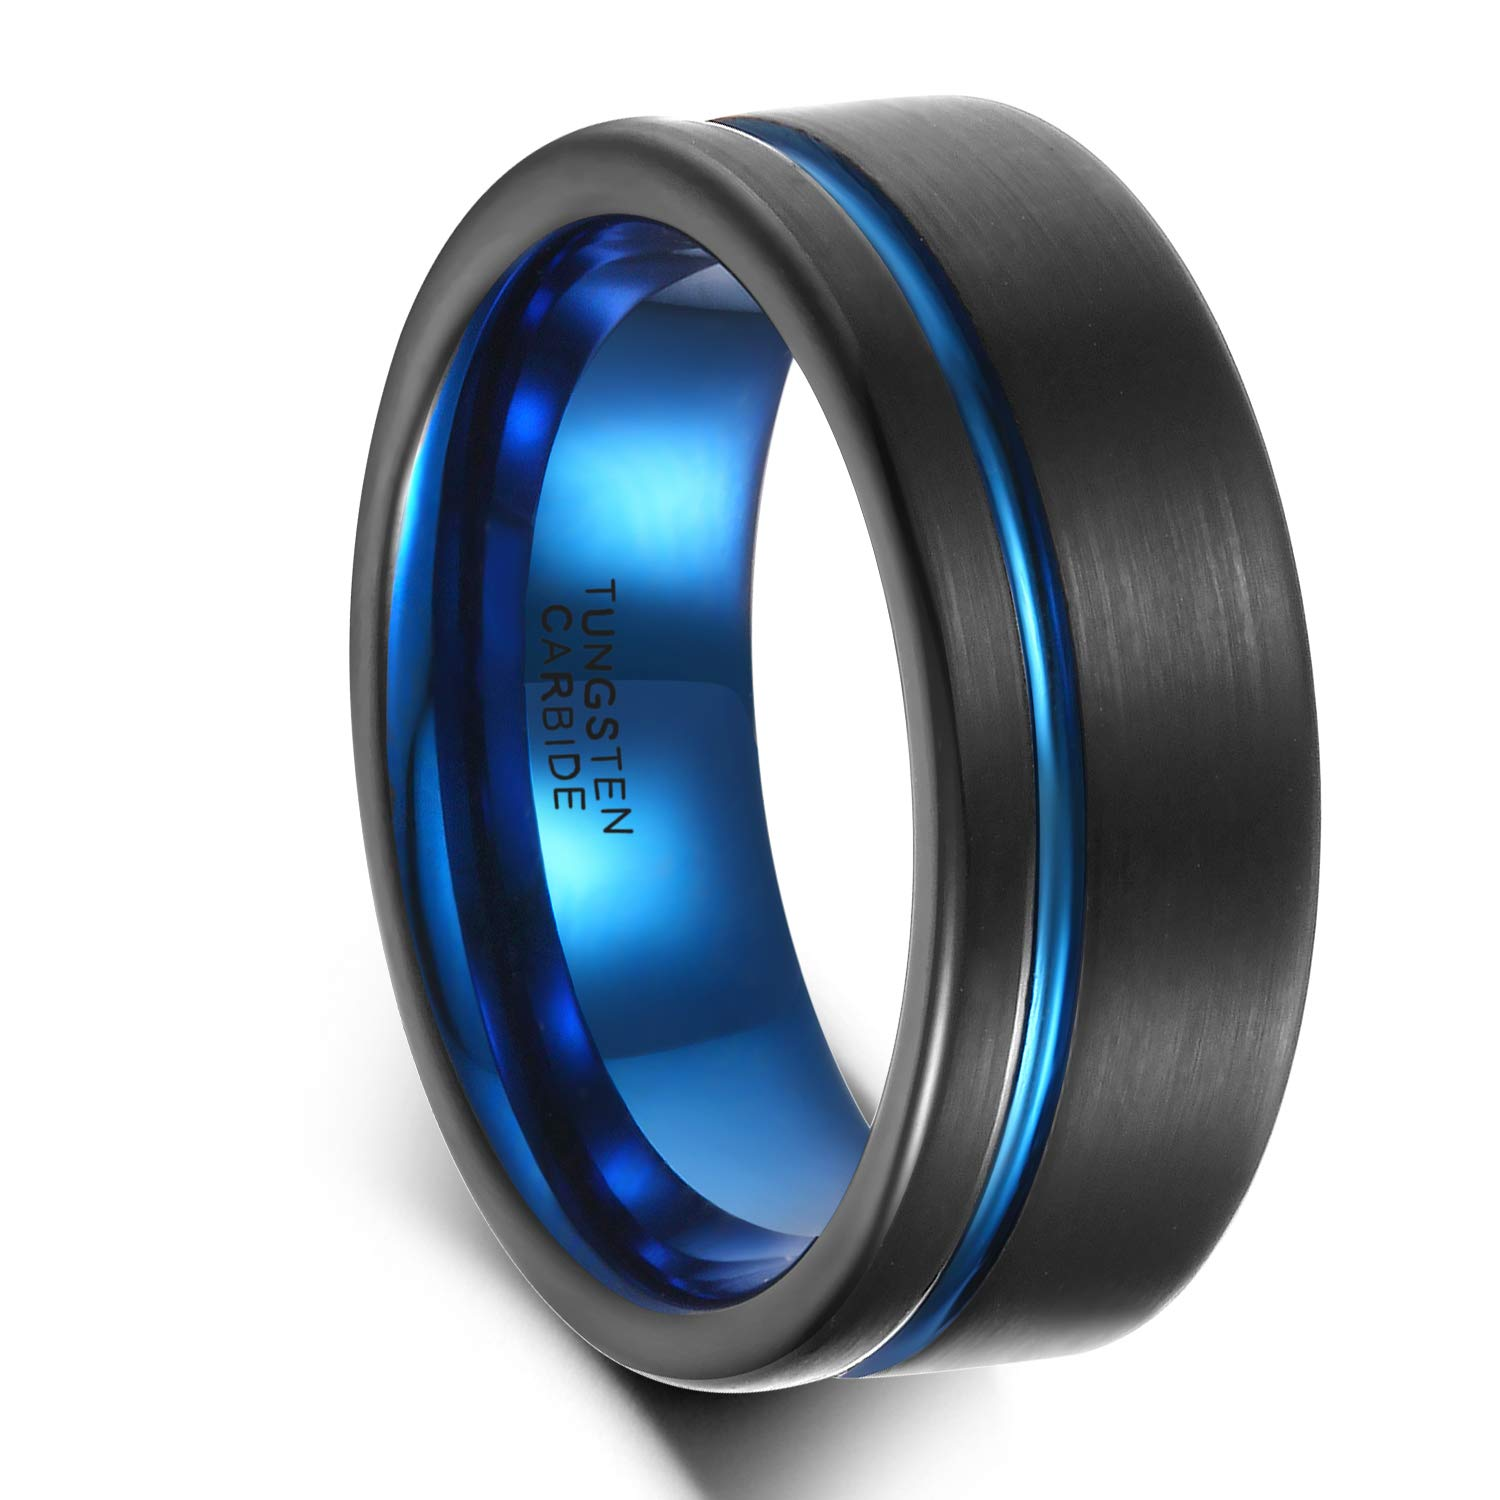 Greenpod 8mm Tungsten Carbide Wedding Ring Band Men Women Rose Gold/Blue/ Black Comfort Fit Size 7-12